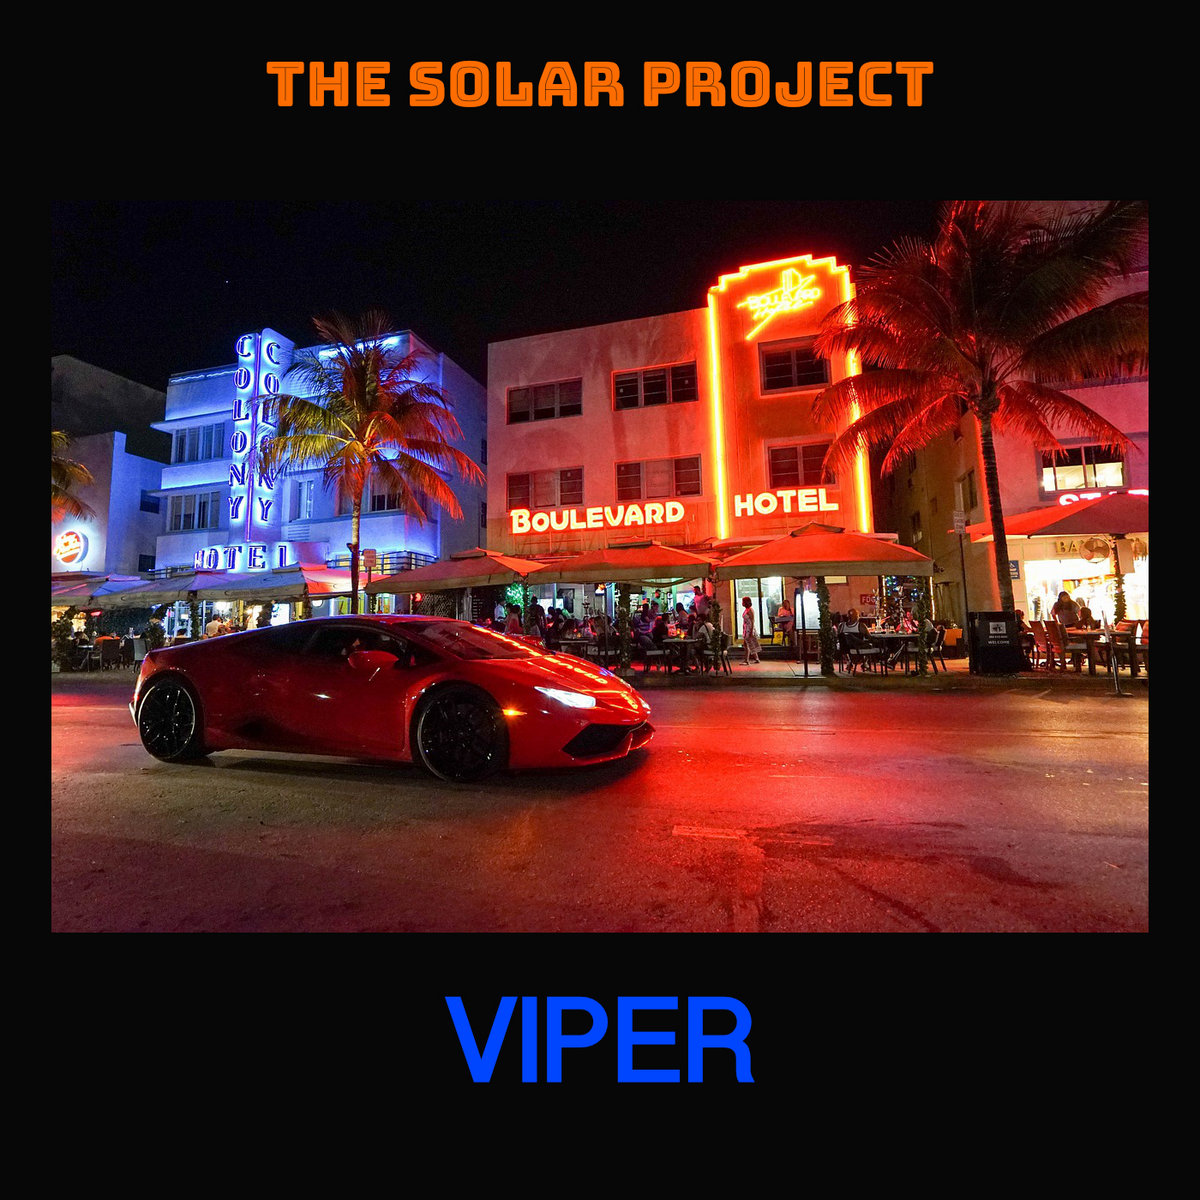 VIPER by The Solar Project